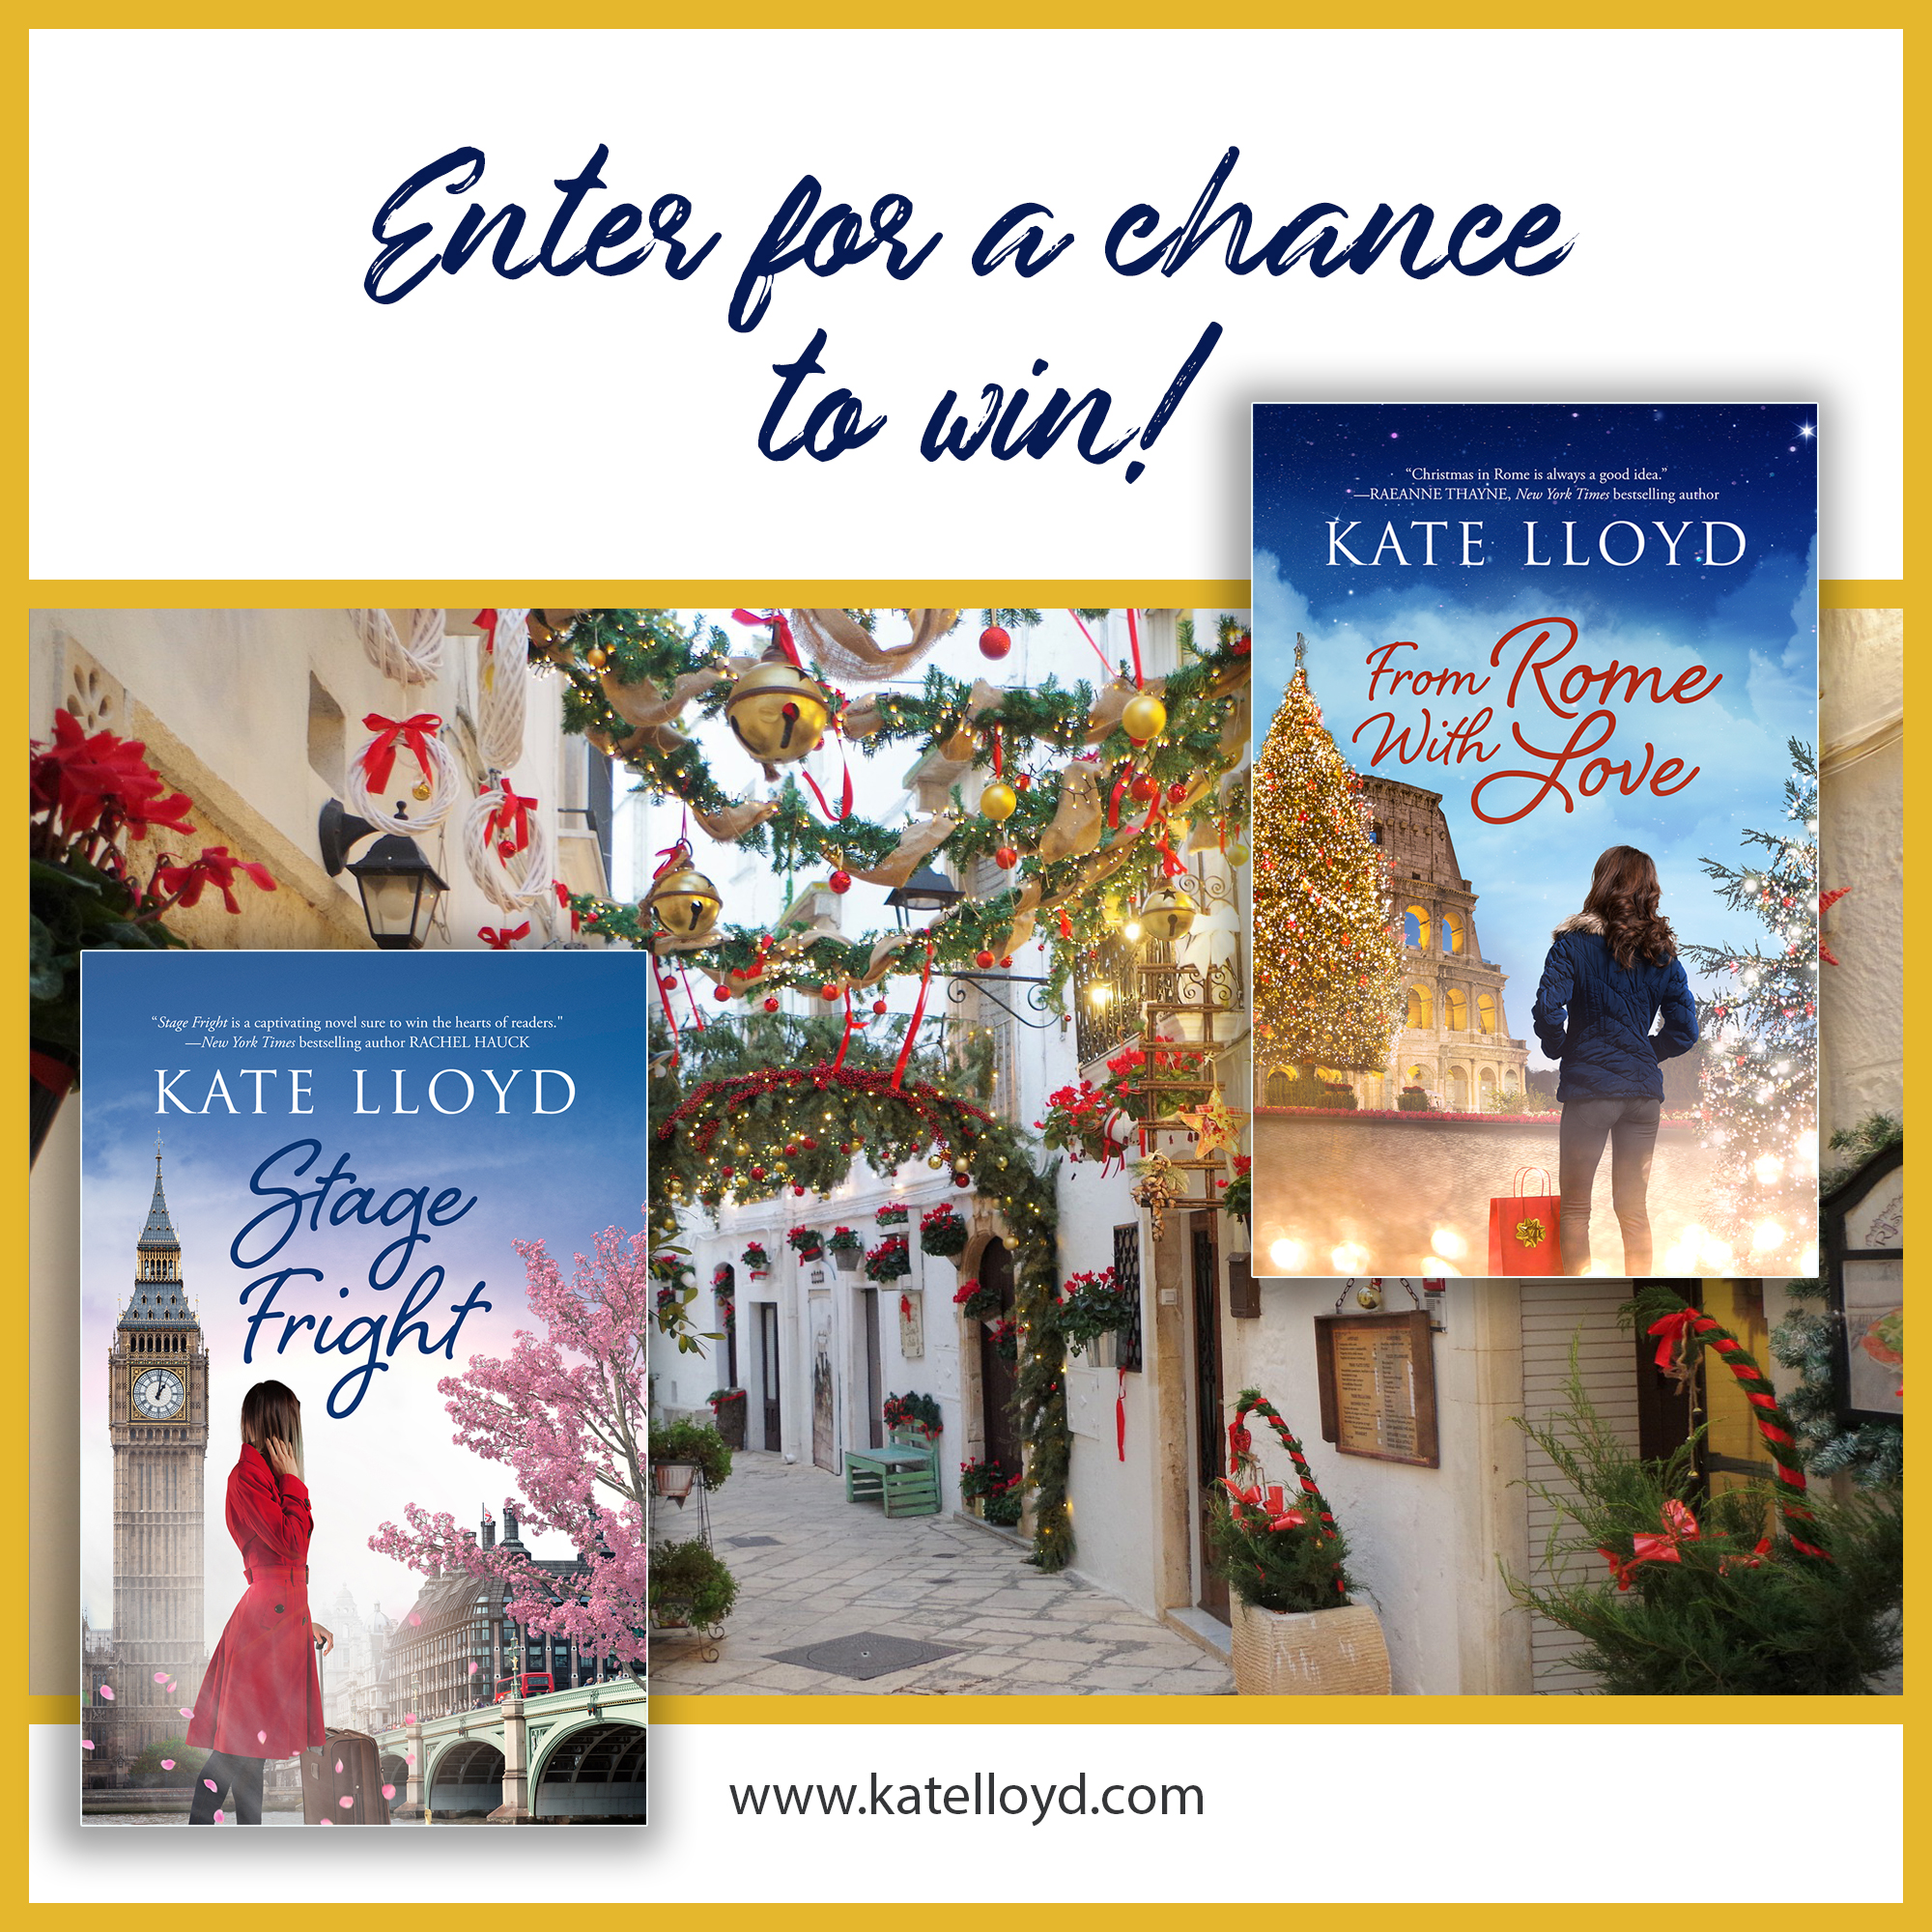 Enter Kate Lloyd's giveaway to win either Stage Fright or From Rome With Love and a $100 gift certificate